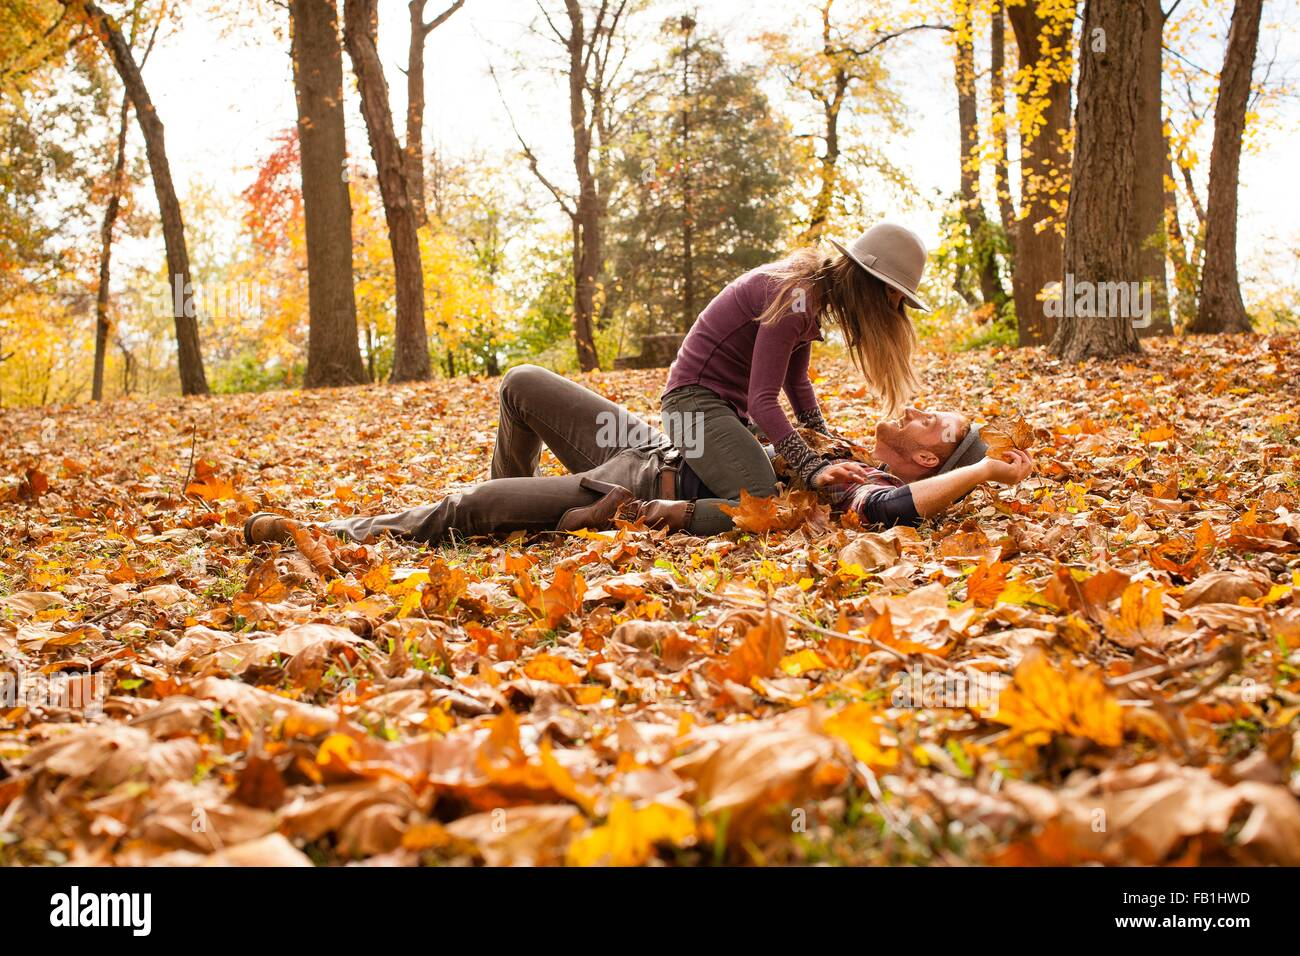 Young couple play fighting on autumn forest floor - Stock Image